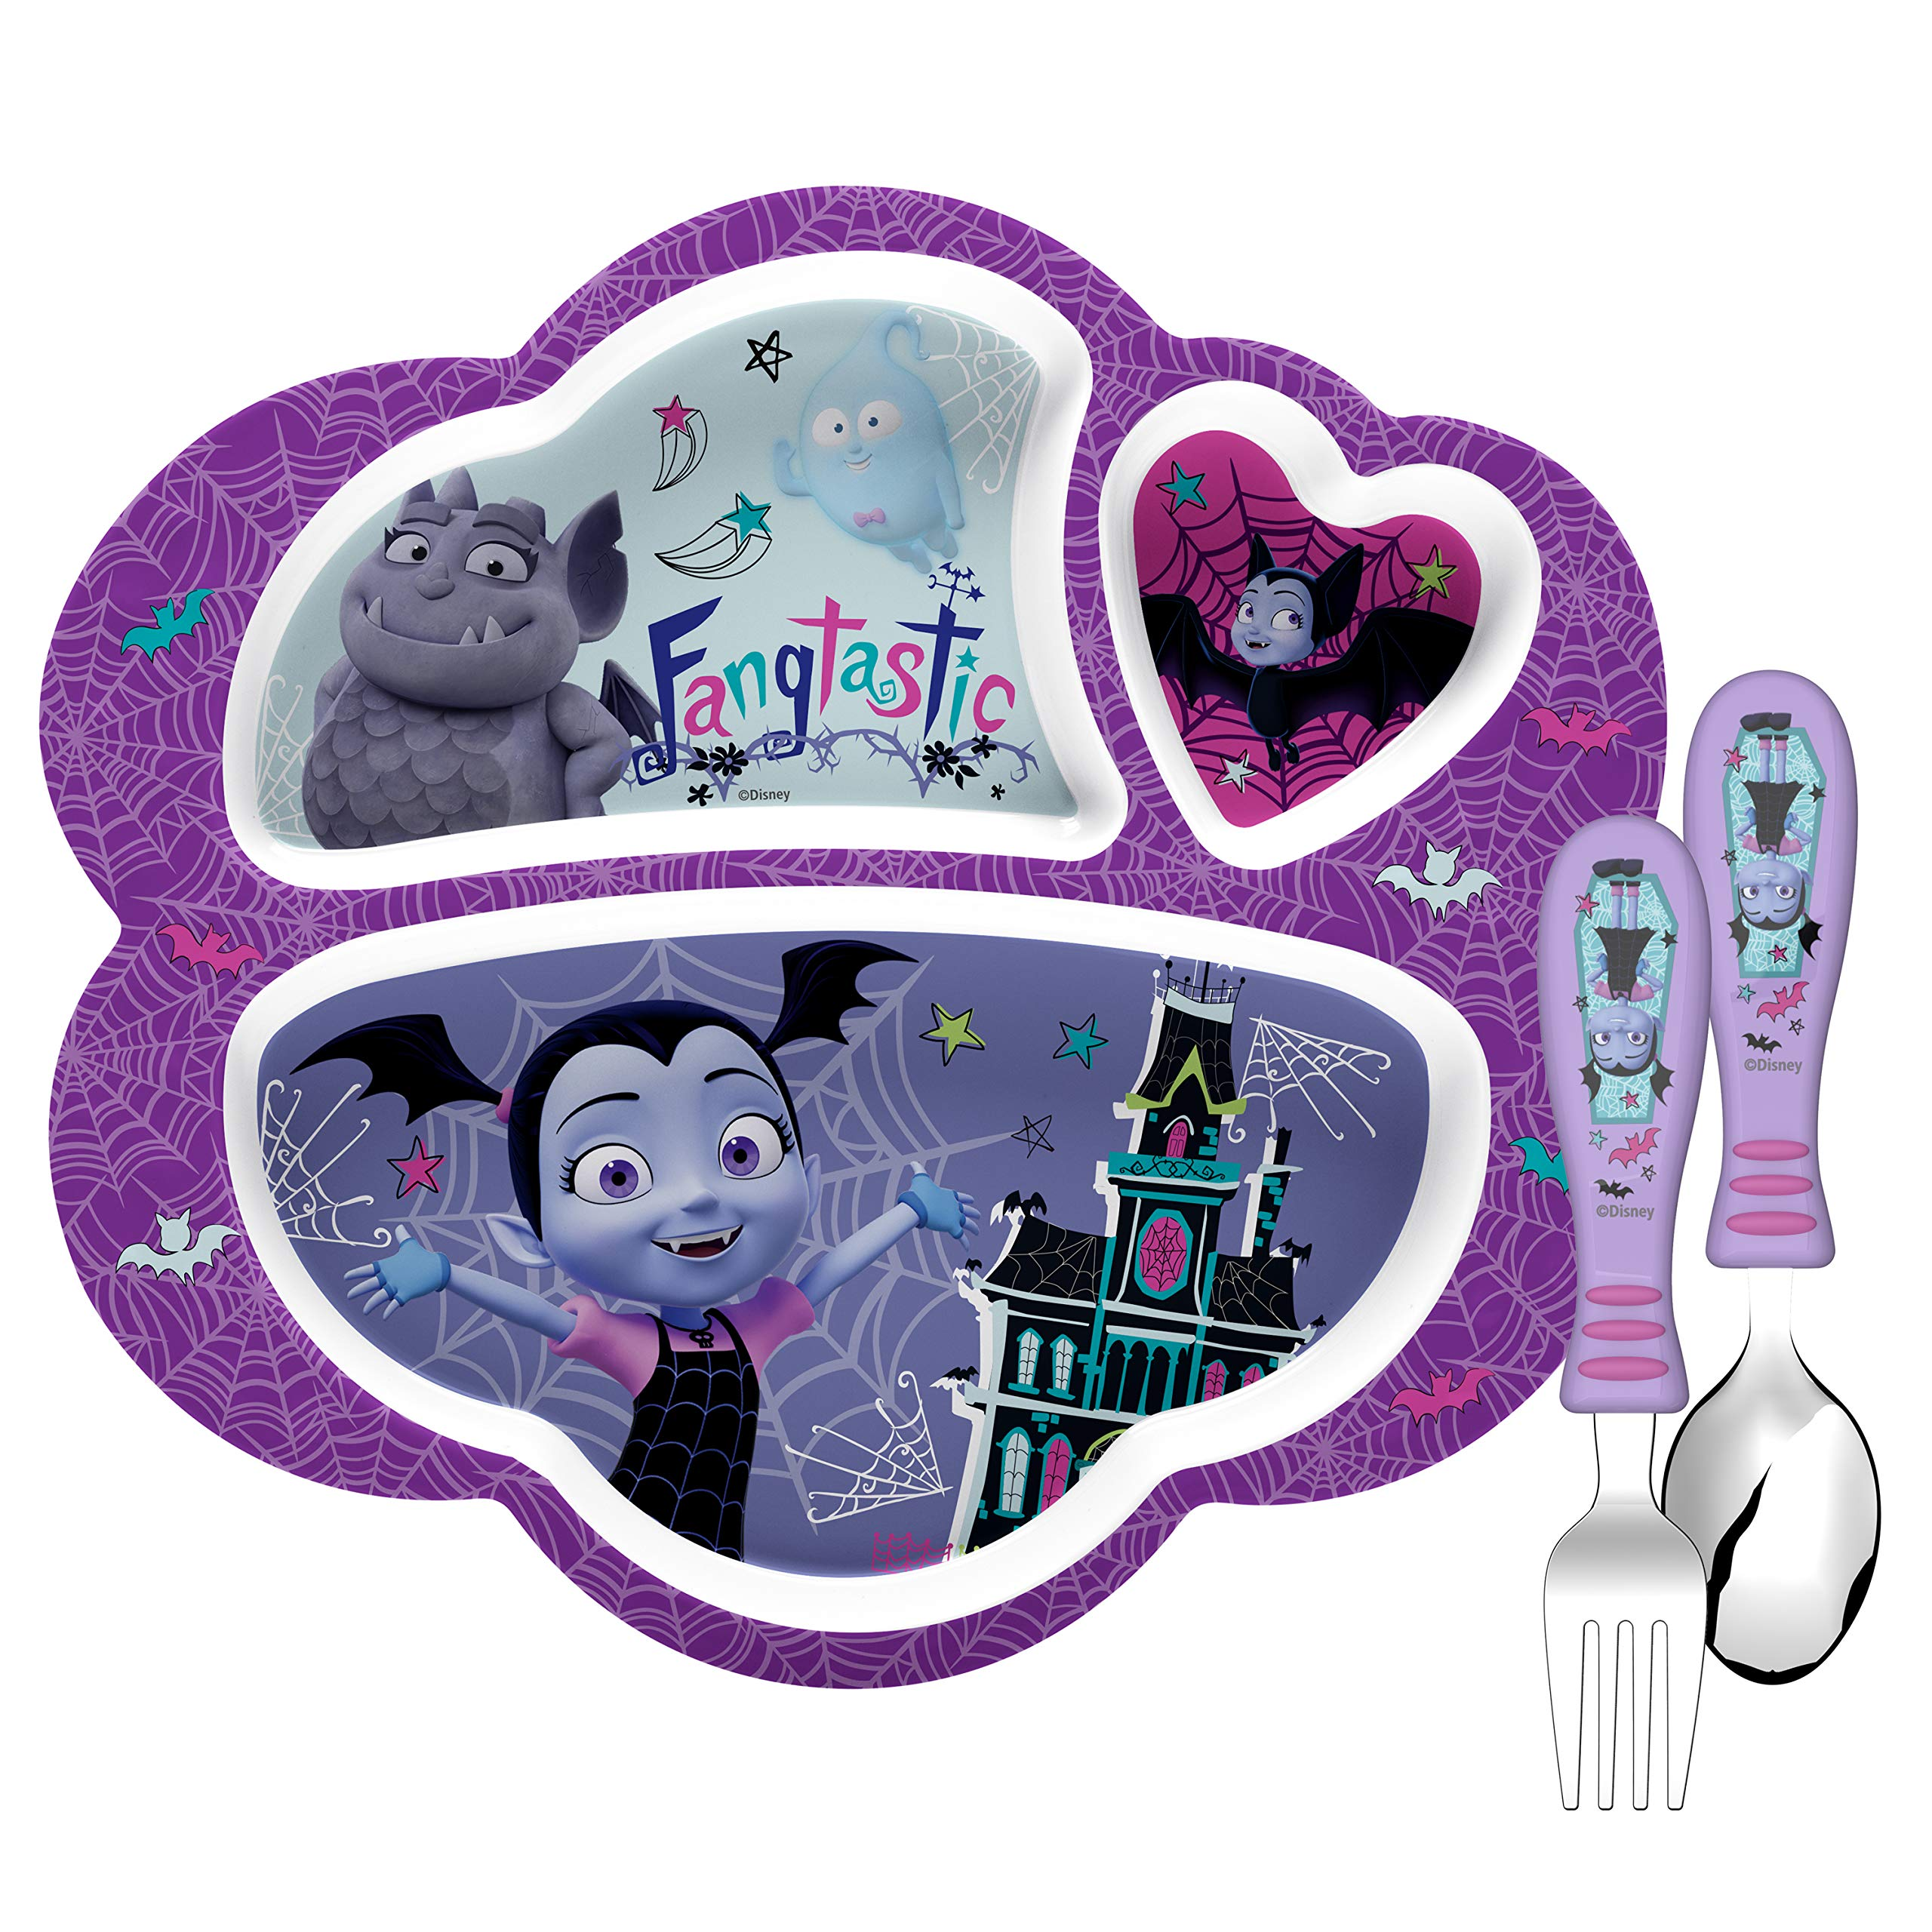 Zak Designs Vampirina Kids Dinnerware Set Includes Melamine 3-Section Divided Plate and Utensil Tableware, Made of Durable Material and Perfect for Kids (Vampirina, 3 Piece Set, BPA-Free) by Zak Designs